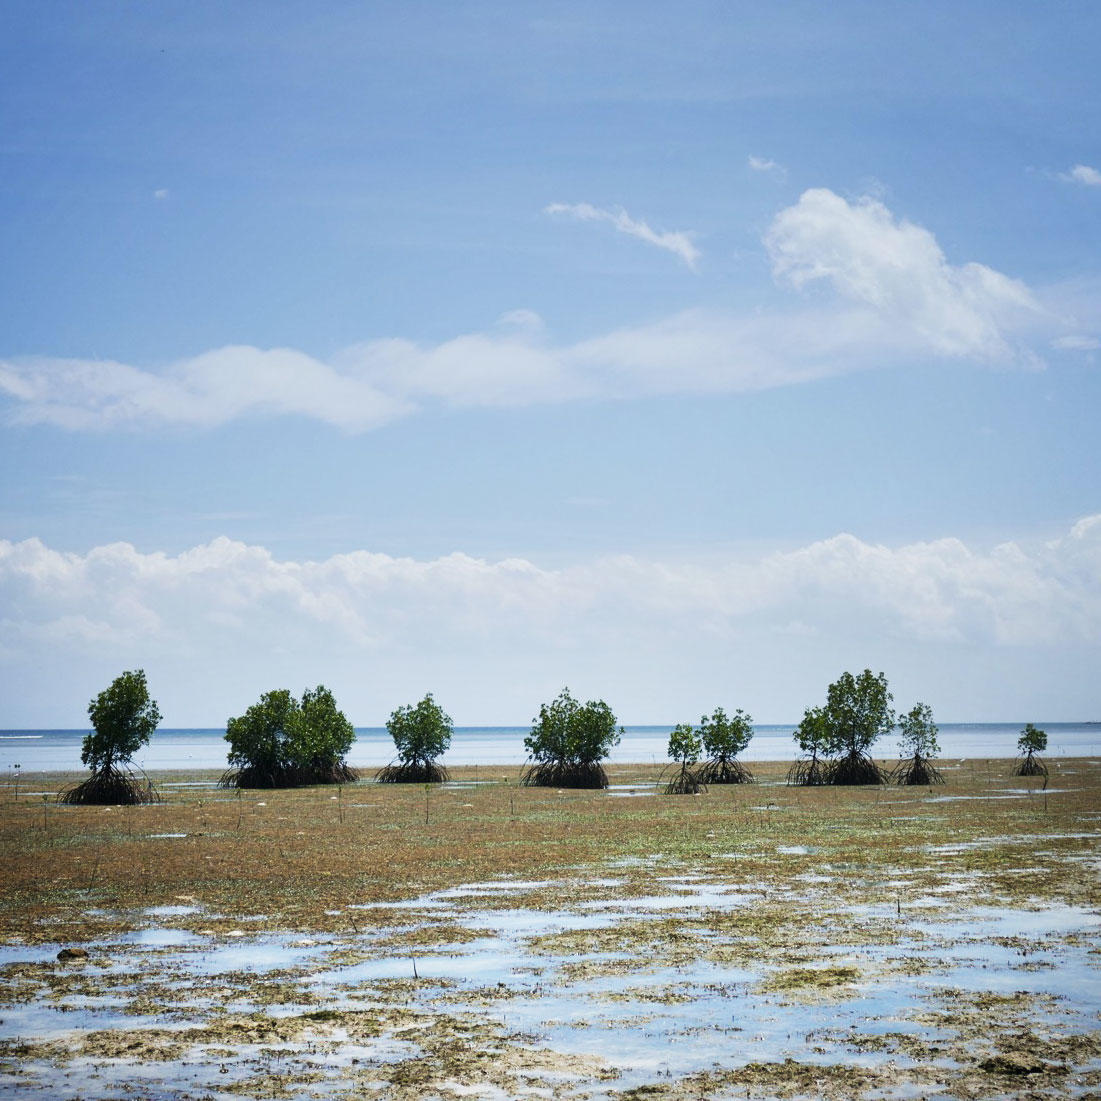 Mangroves stand under blue skies on Palawan, out of reach of Super Typhoon Lando. Noah Strycker